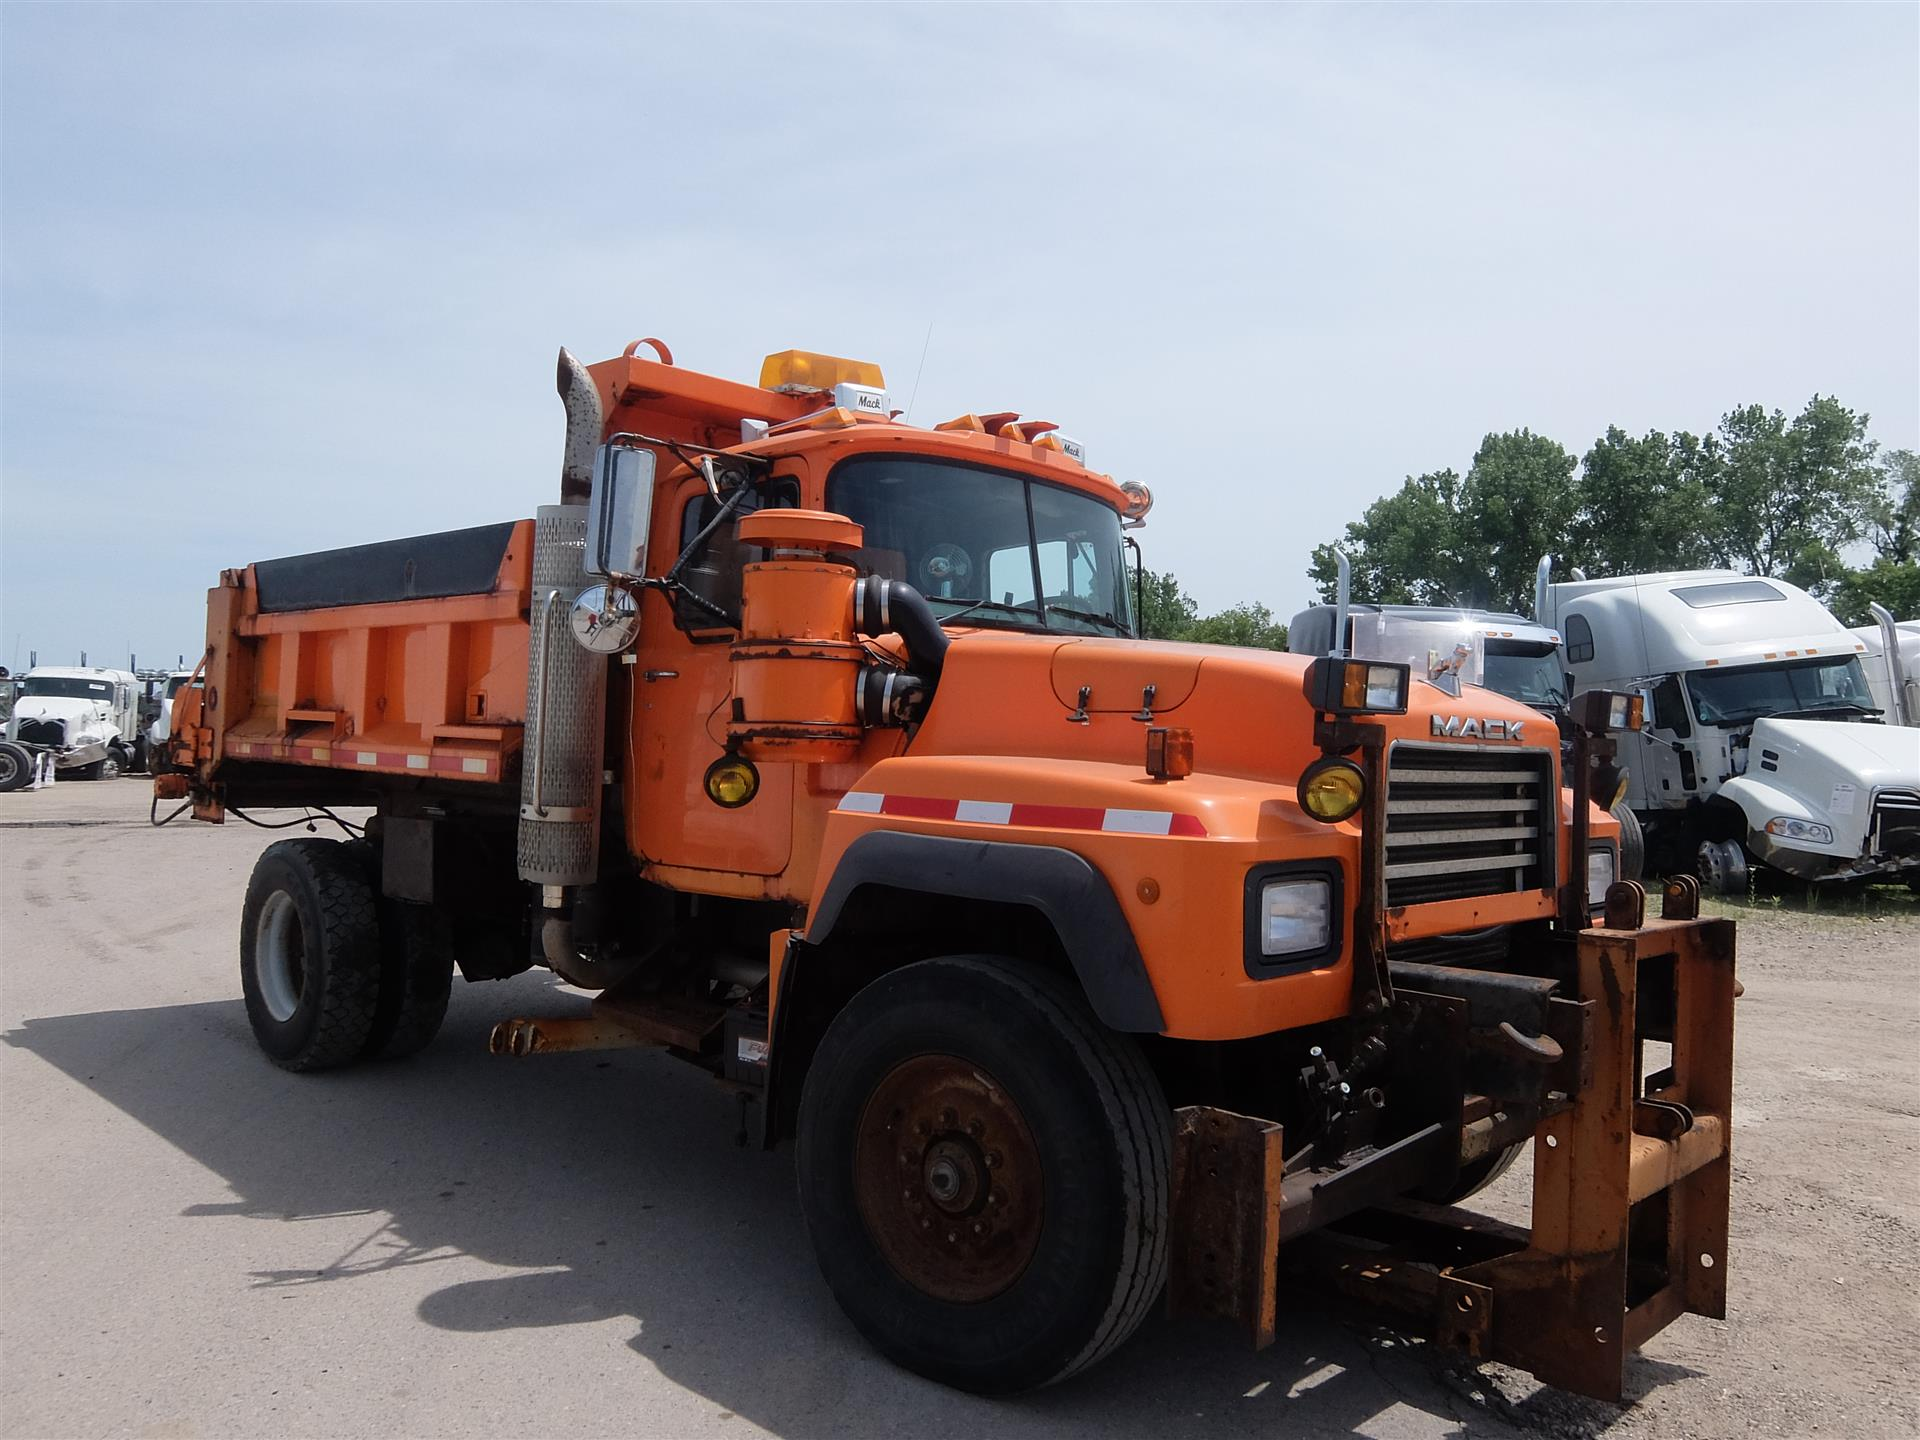 1994 Mack rd688s for sale-59067526